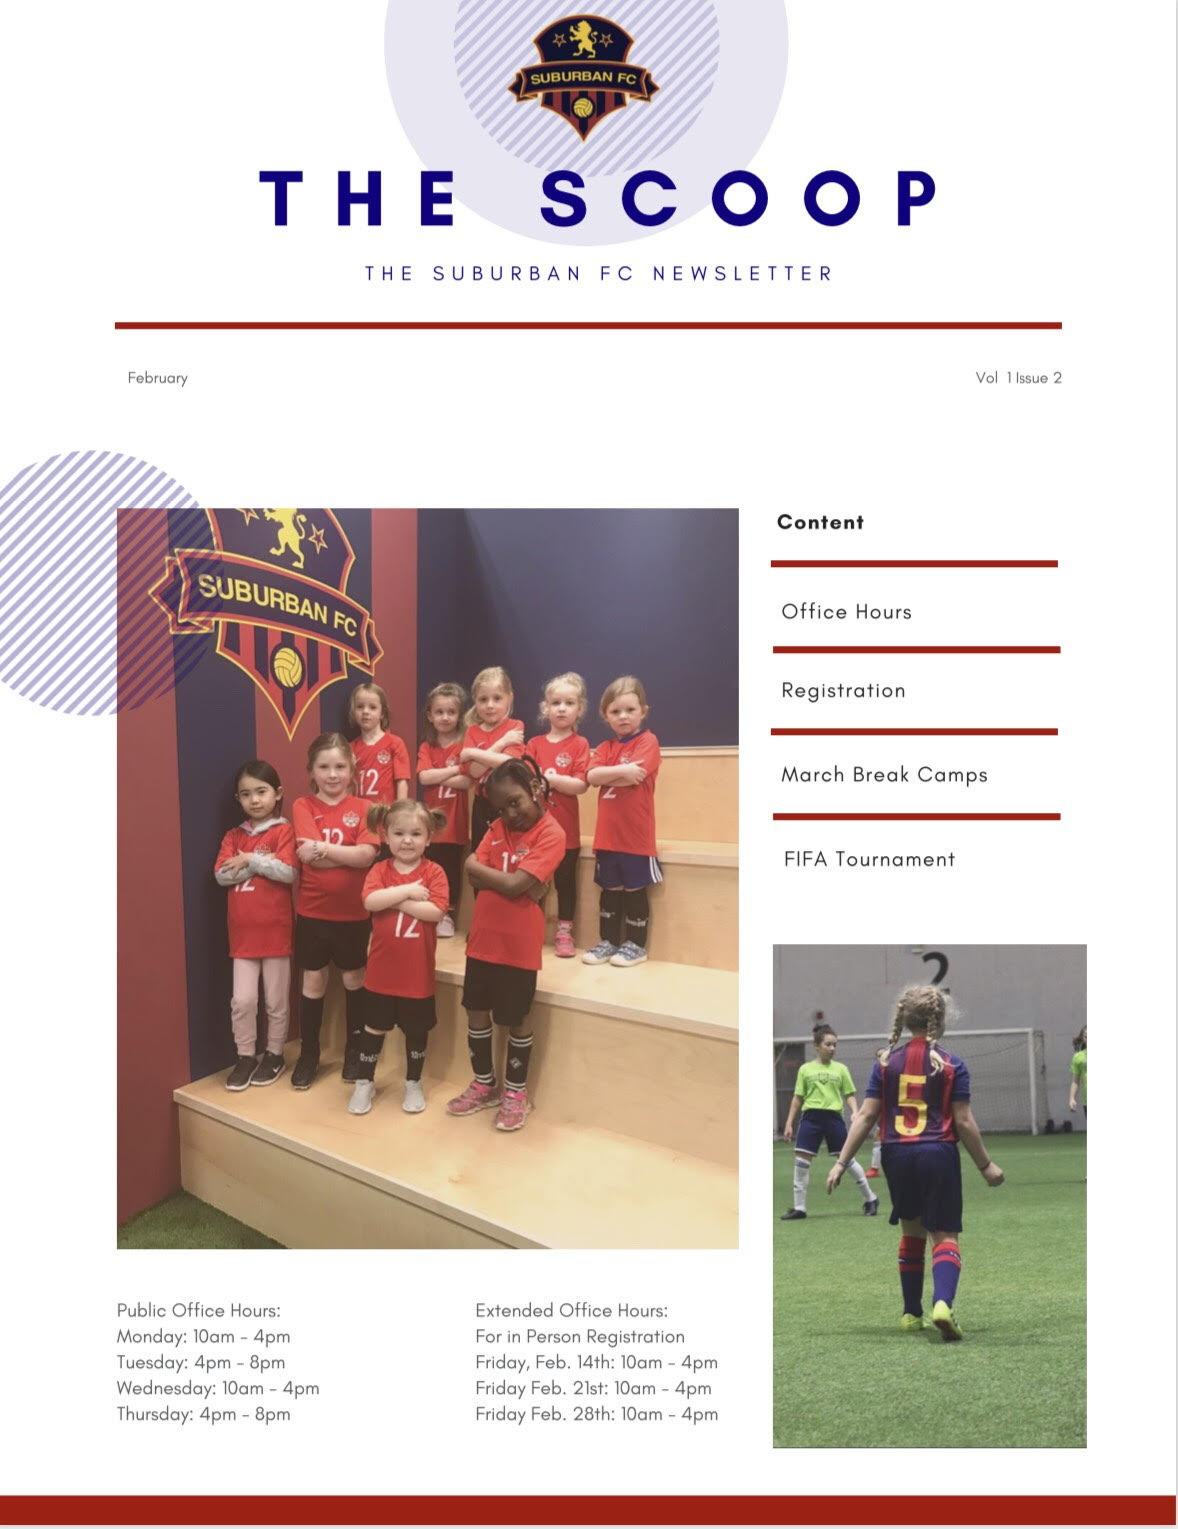 Suburban FC - The Scoop February 2020